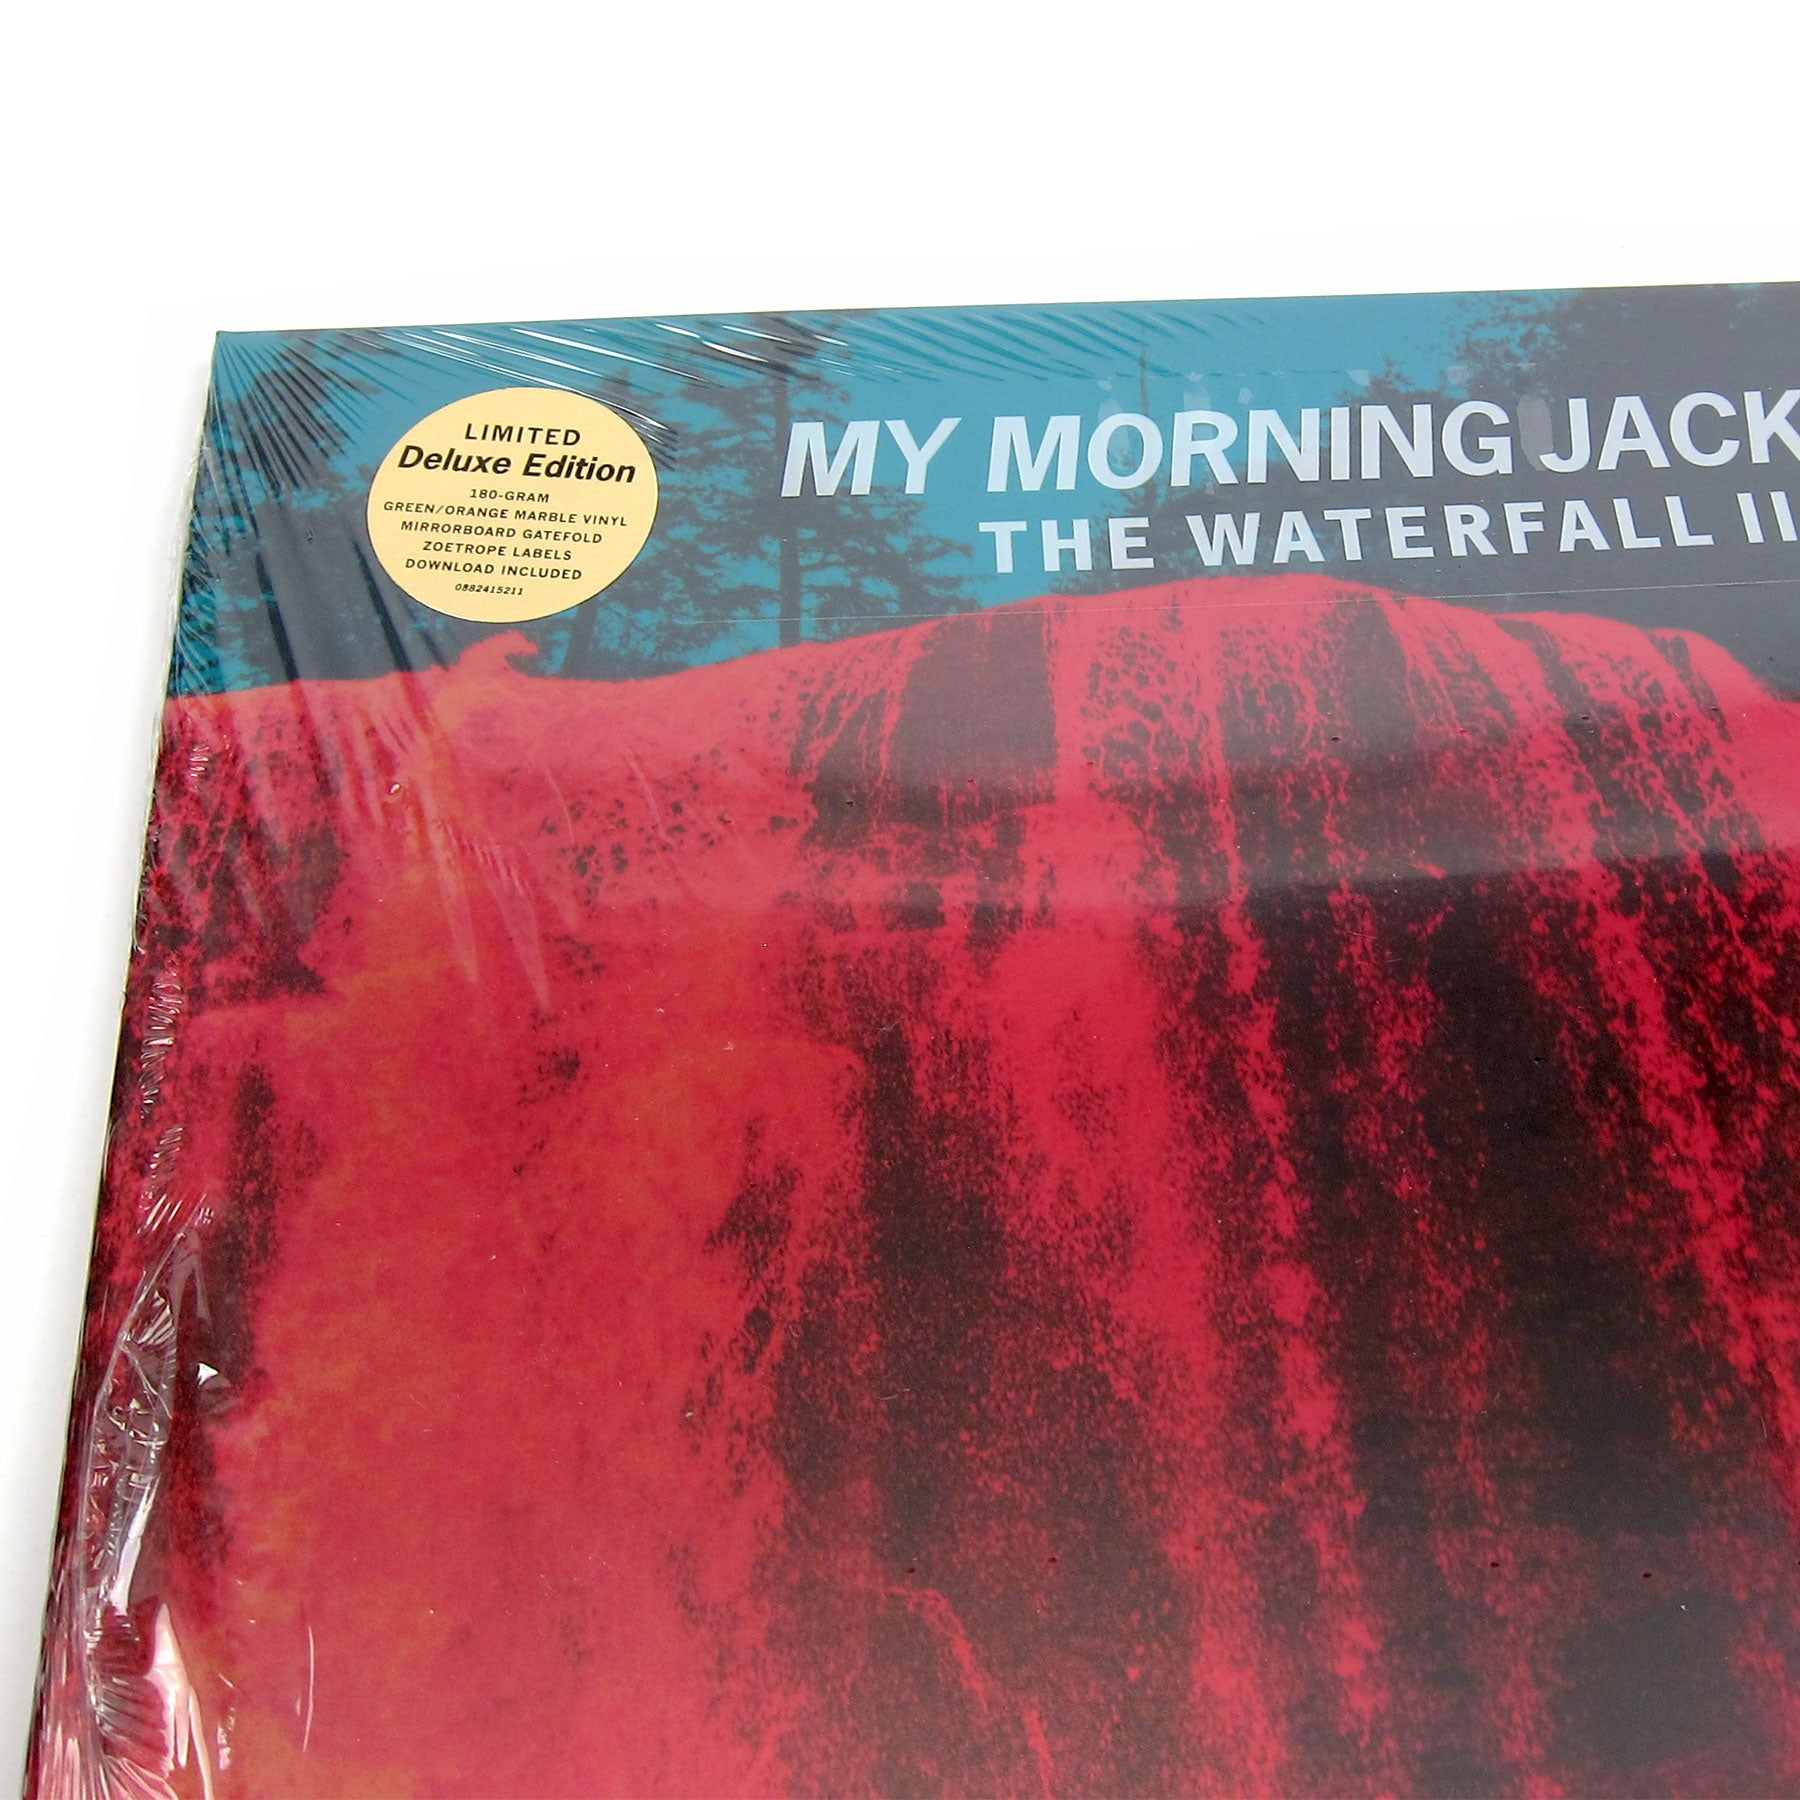 My Morning Jacket The Waterfall Ii Deluxe Edition Colored Vinyl V Turntablelab Com